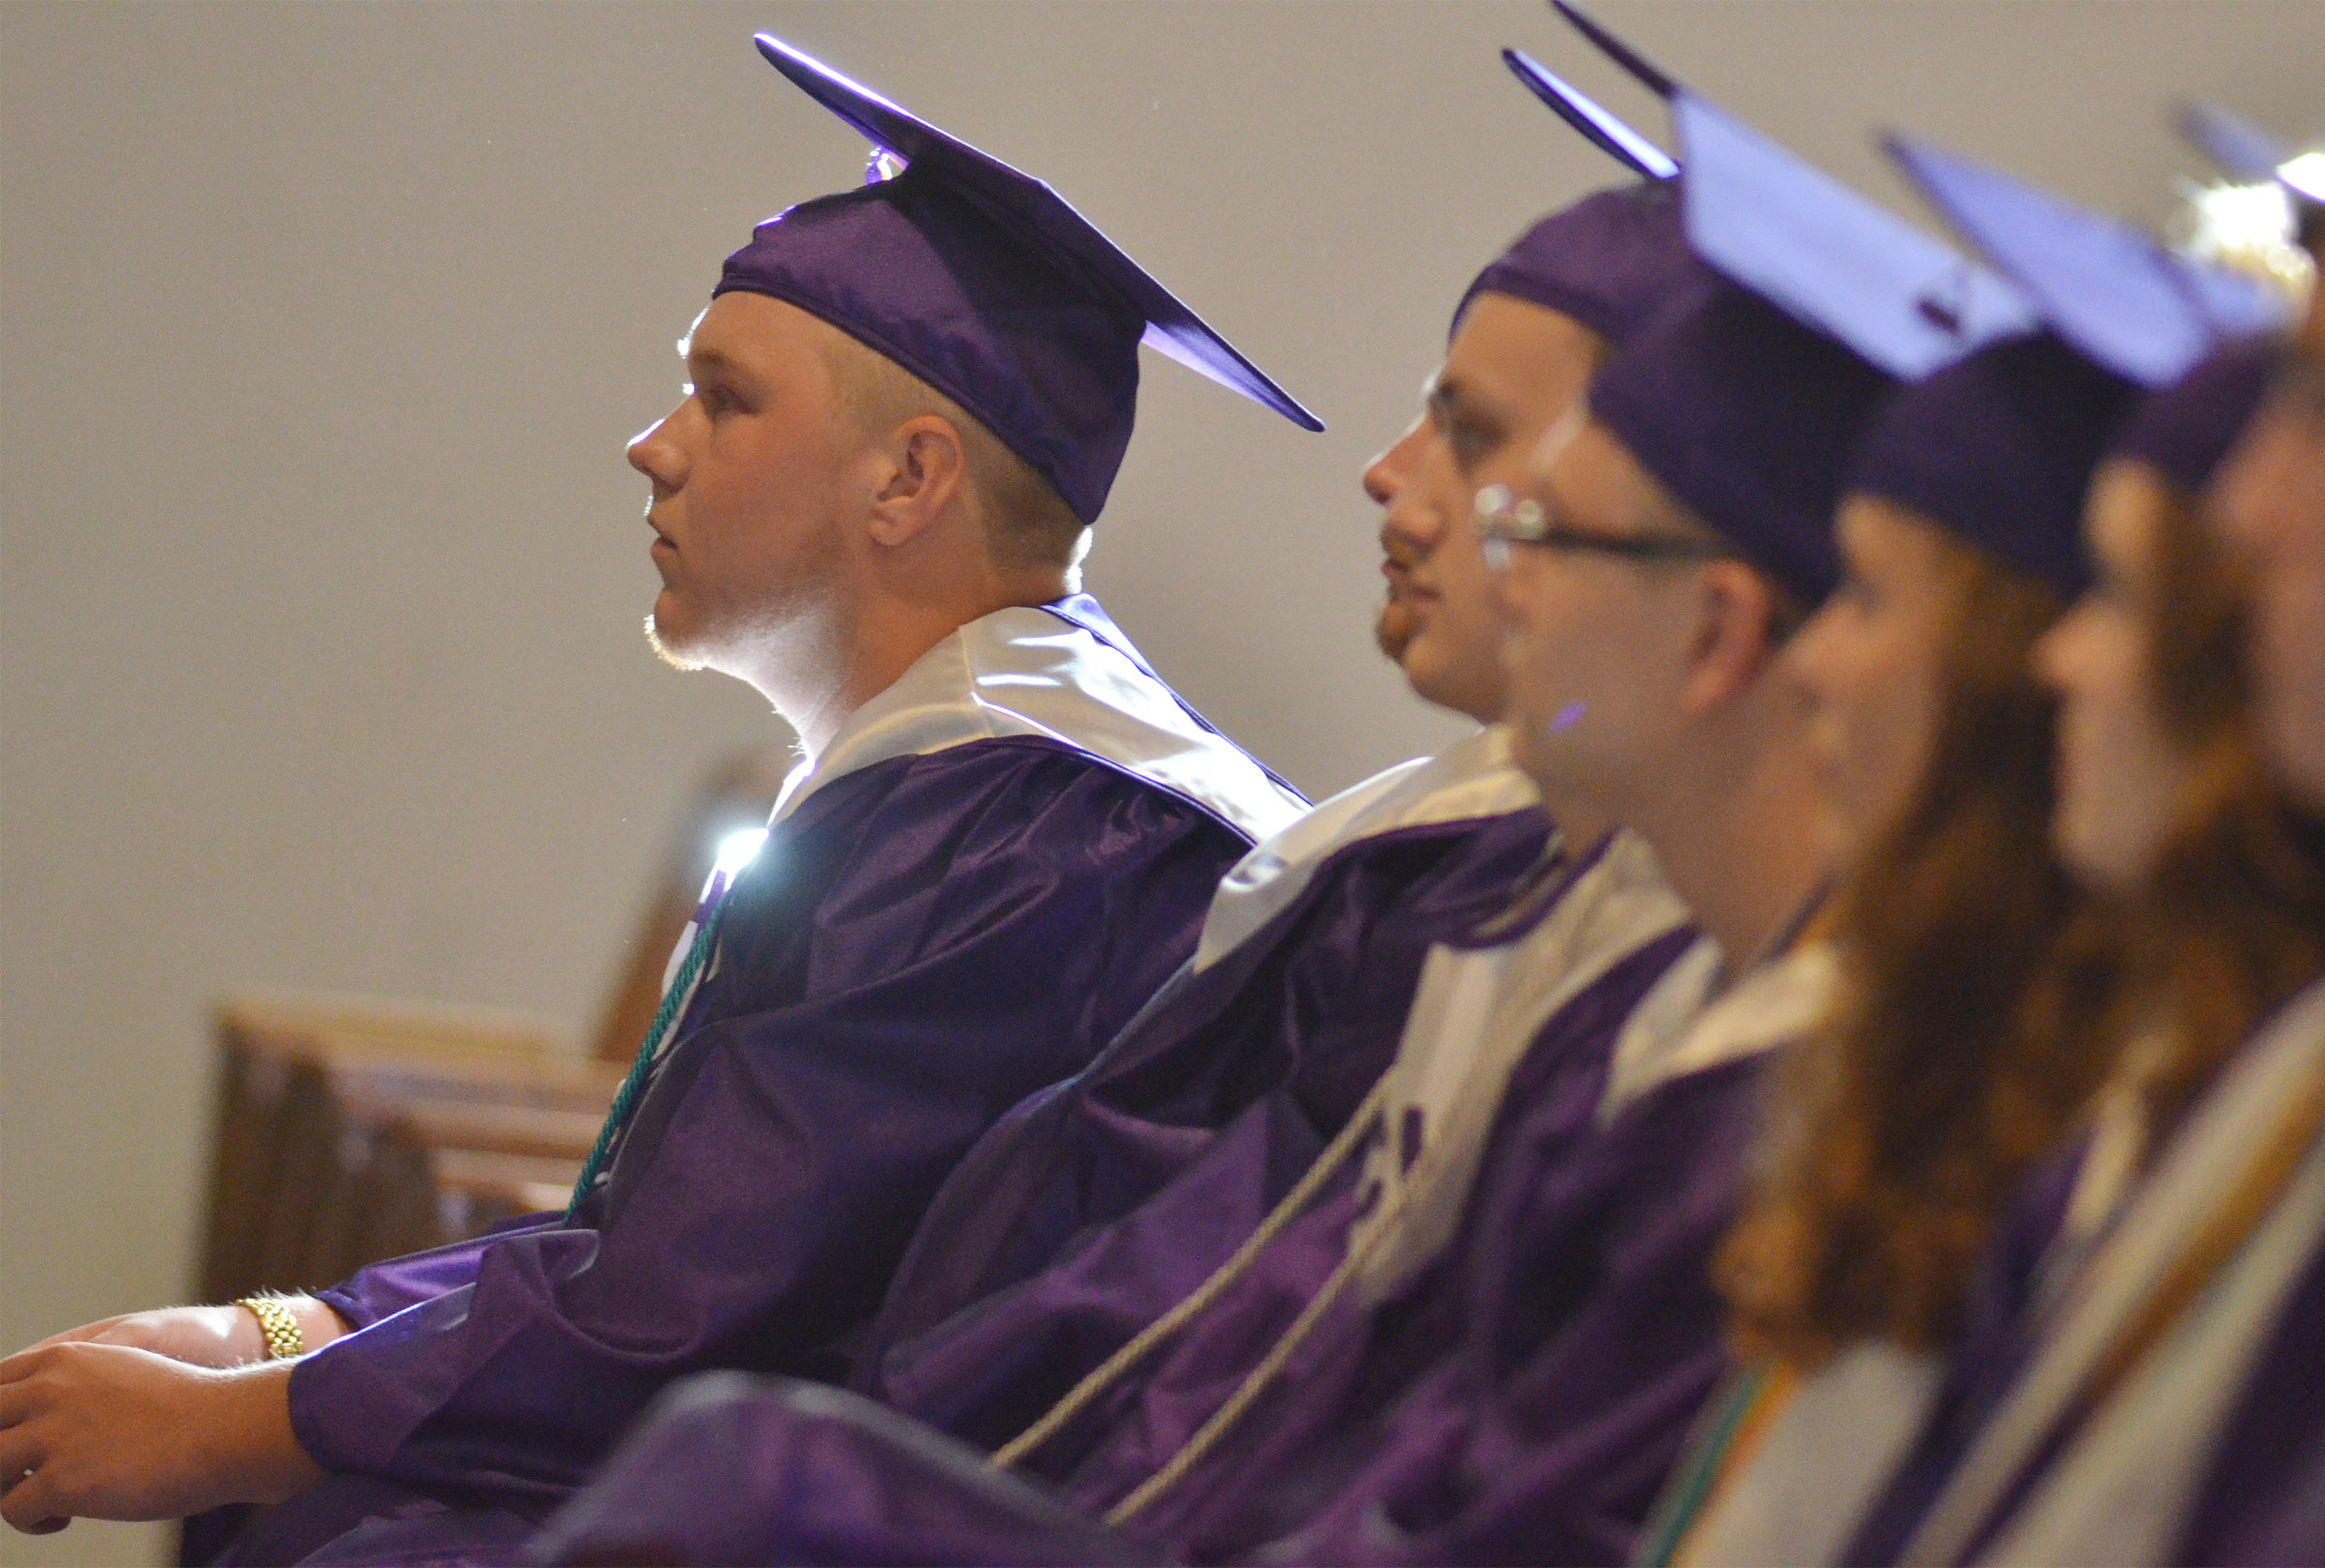 CHS senior Noah Wagers and his classmates listen as his father Steve brings the baccalaureate message.